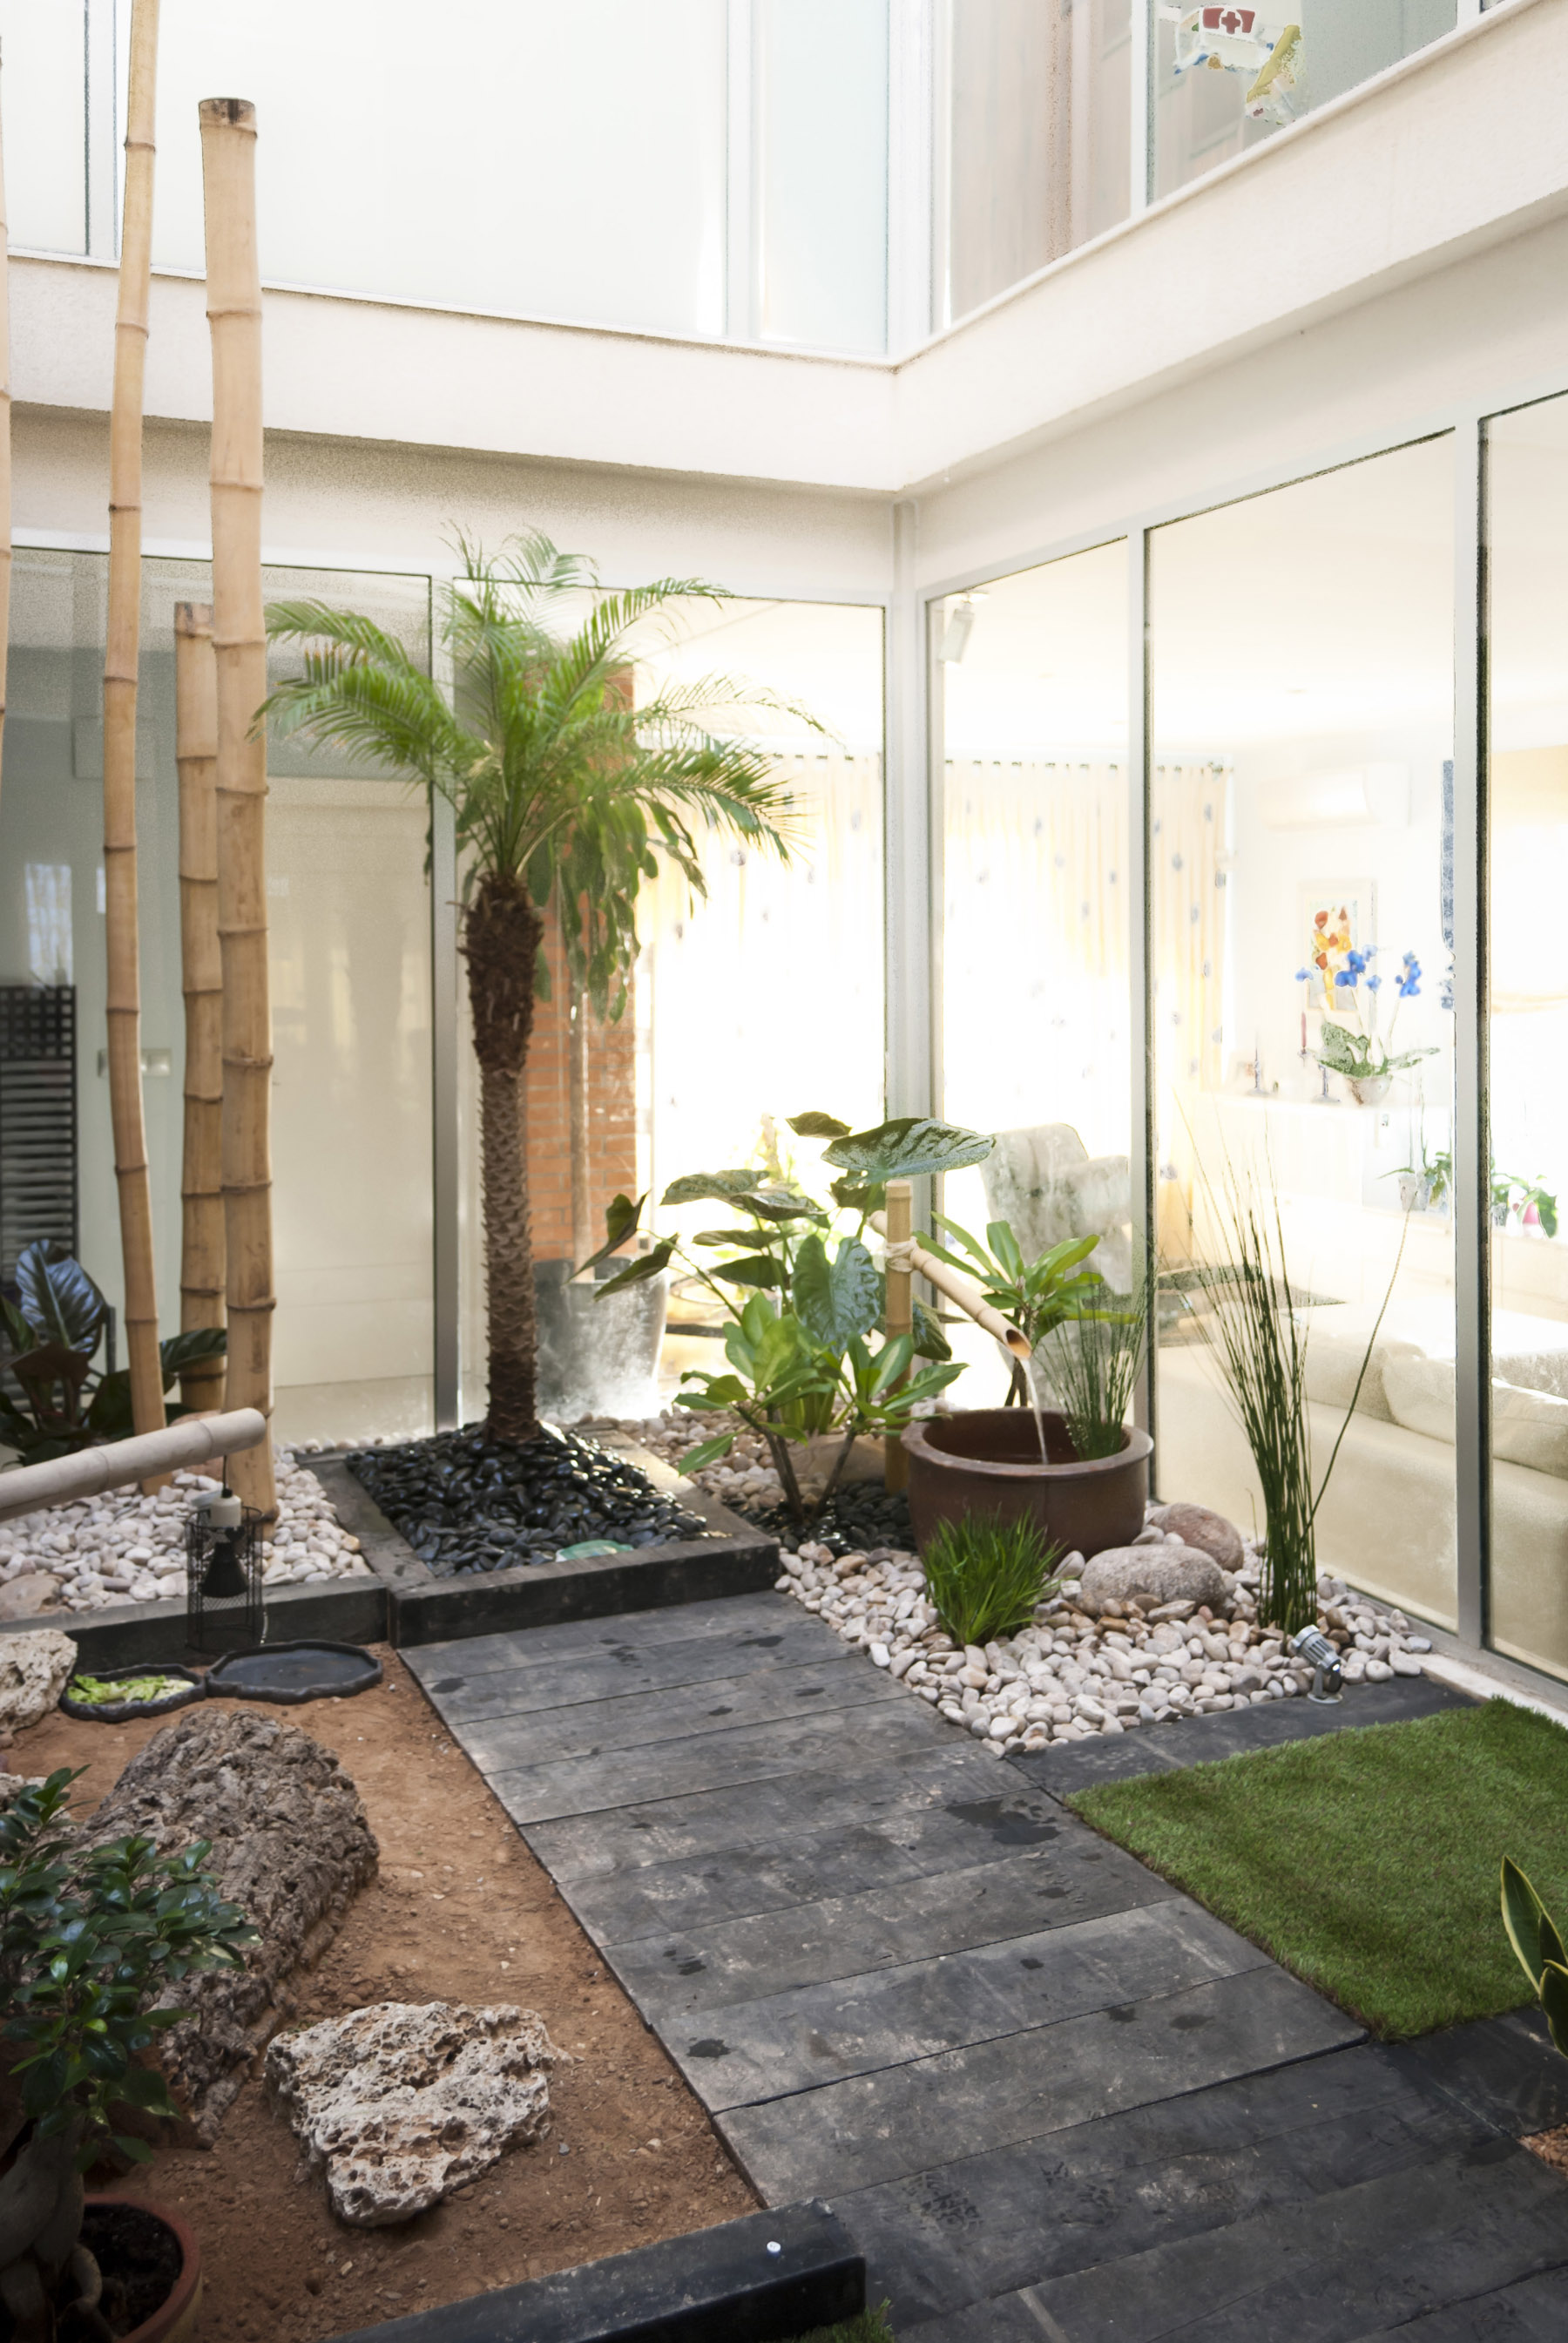 Jardin zen en patio interior david jim nez arquitectura y paisajismo en madrid - Diseno patio interior ...